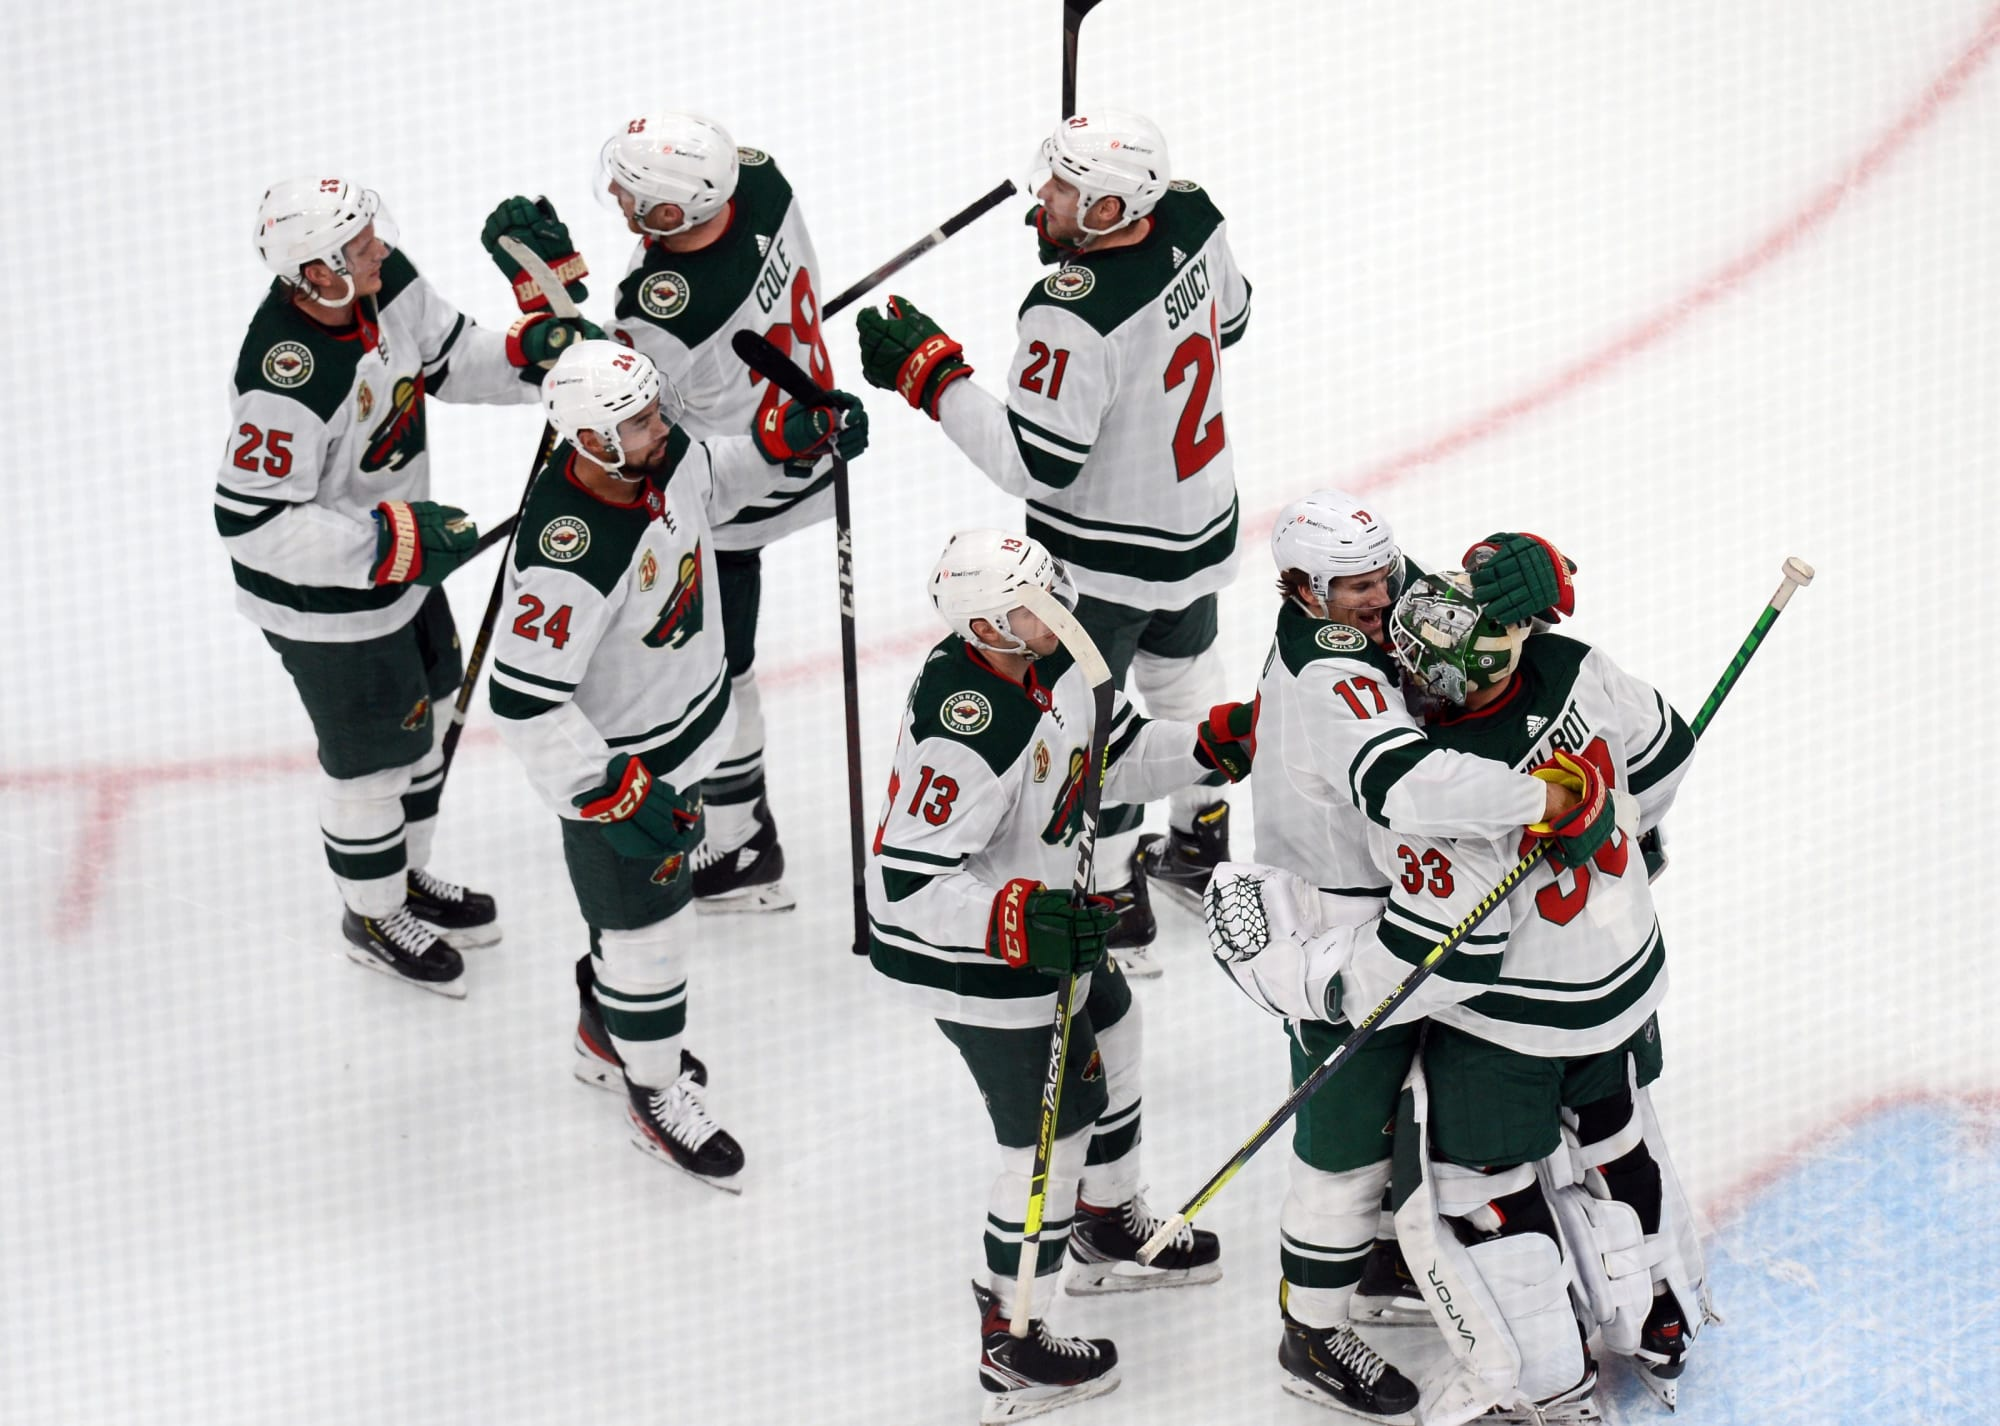 Minnesota Wild Clinch Playoff Berth With Win Over The Sharks